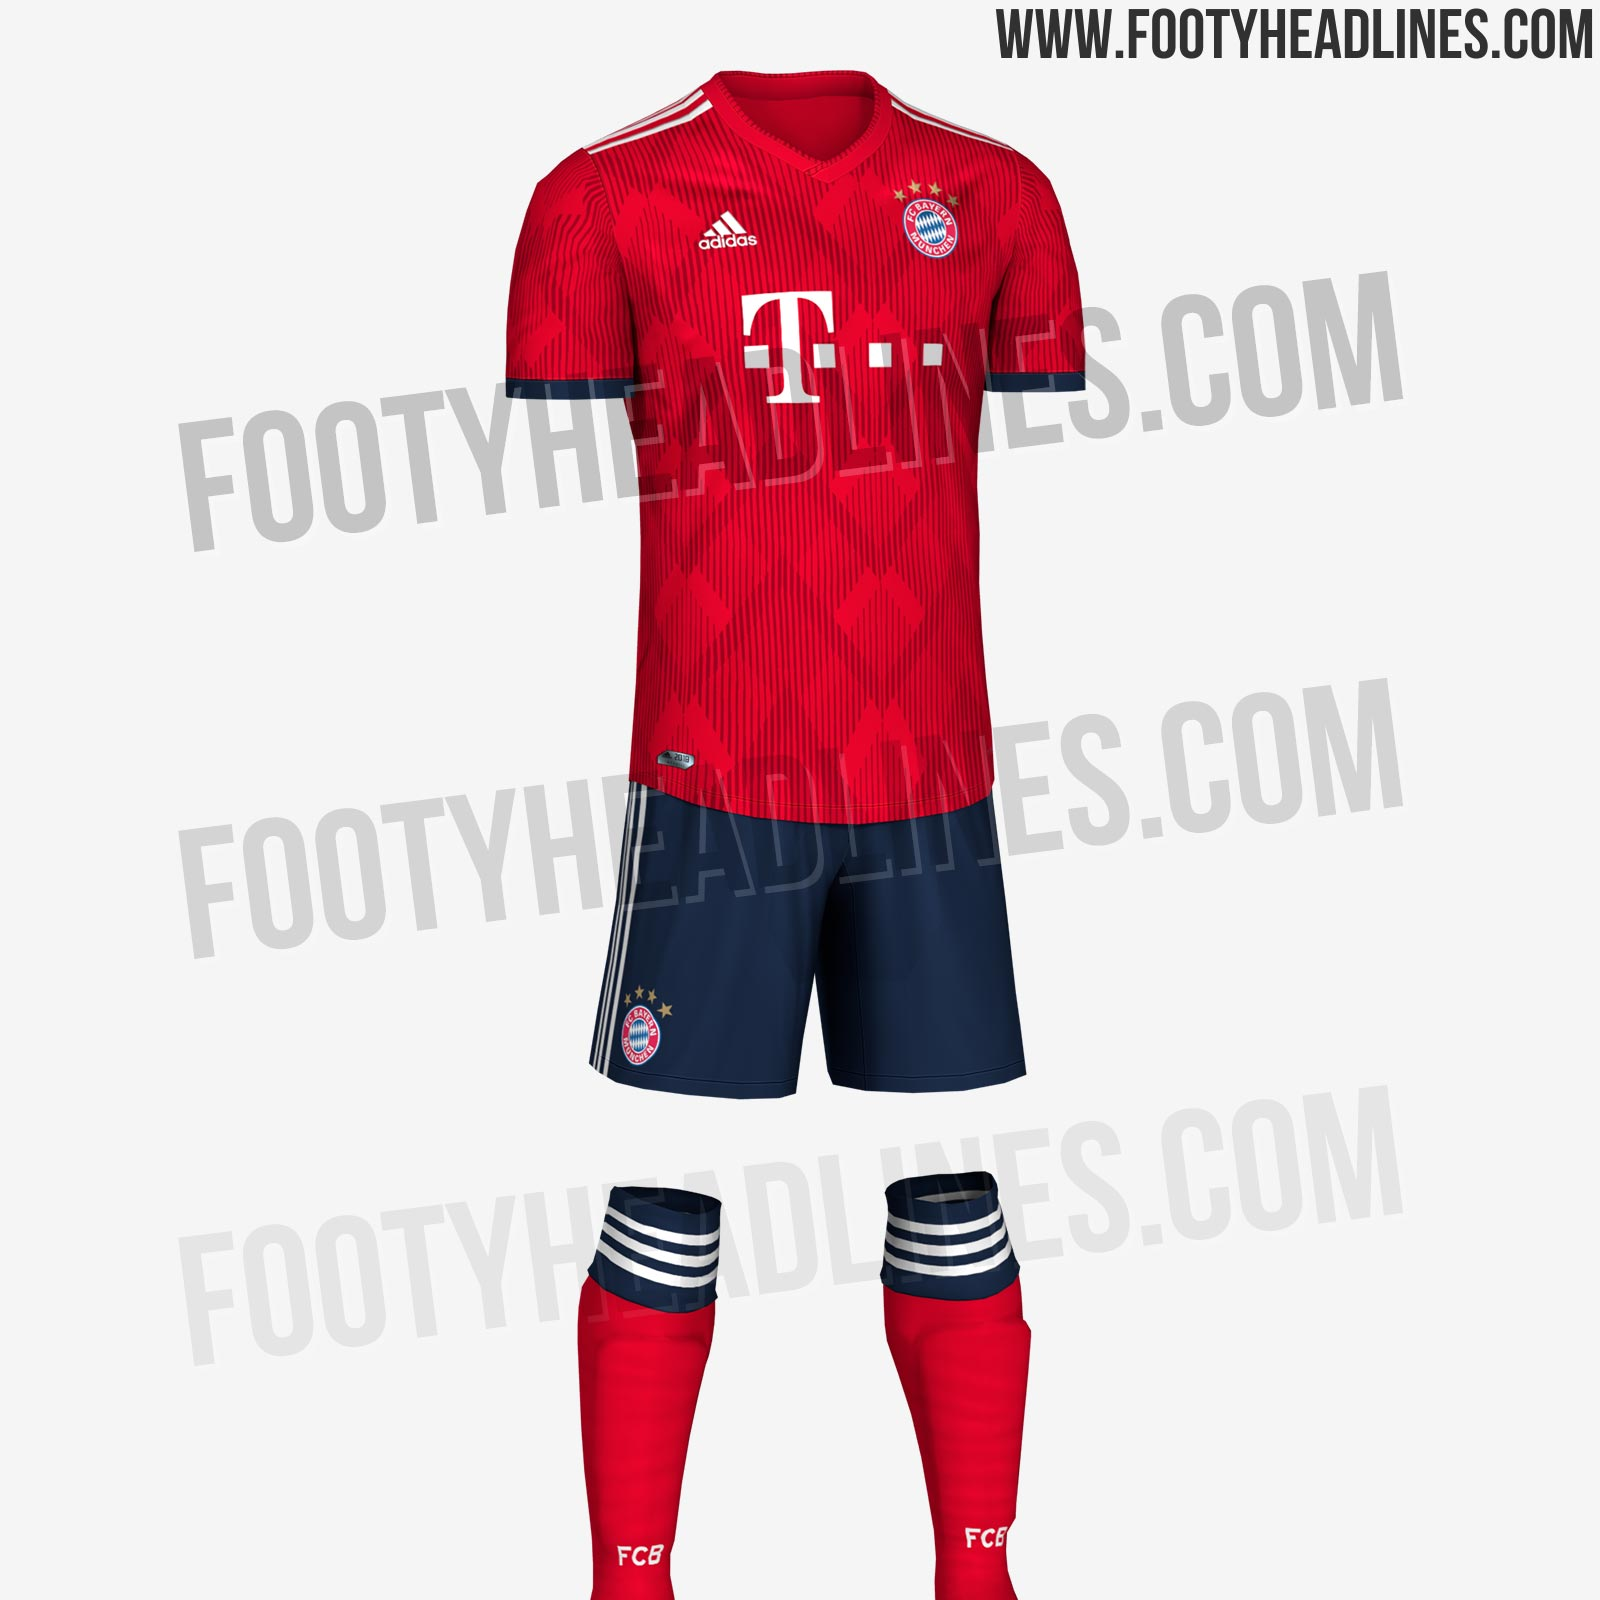 60c720a649a Dark blue shorts and red socks complete the Bayern Munich 18-19 kit.